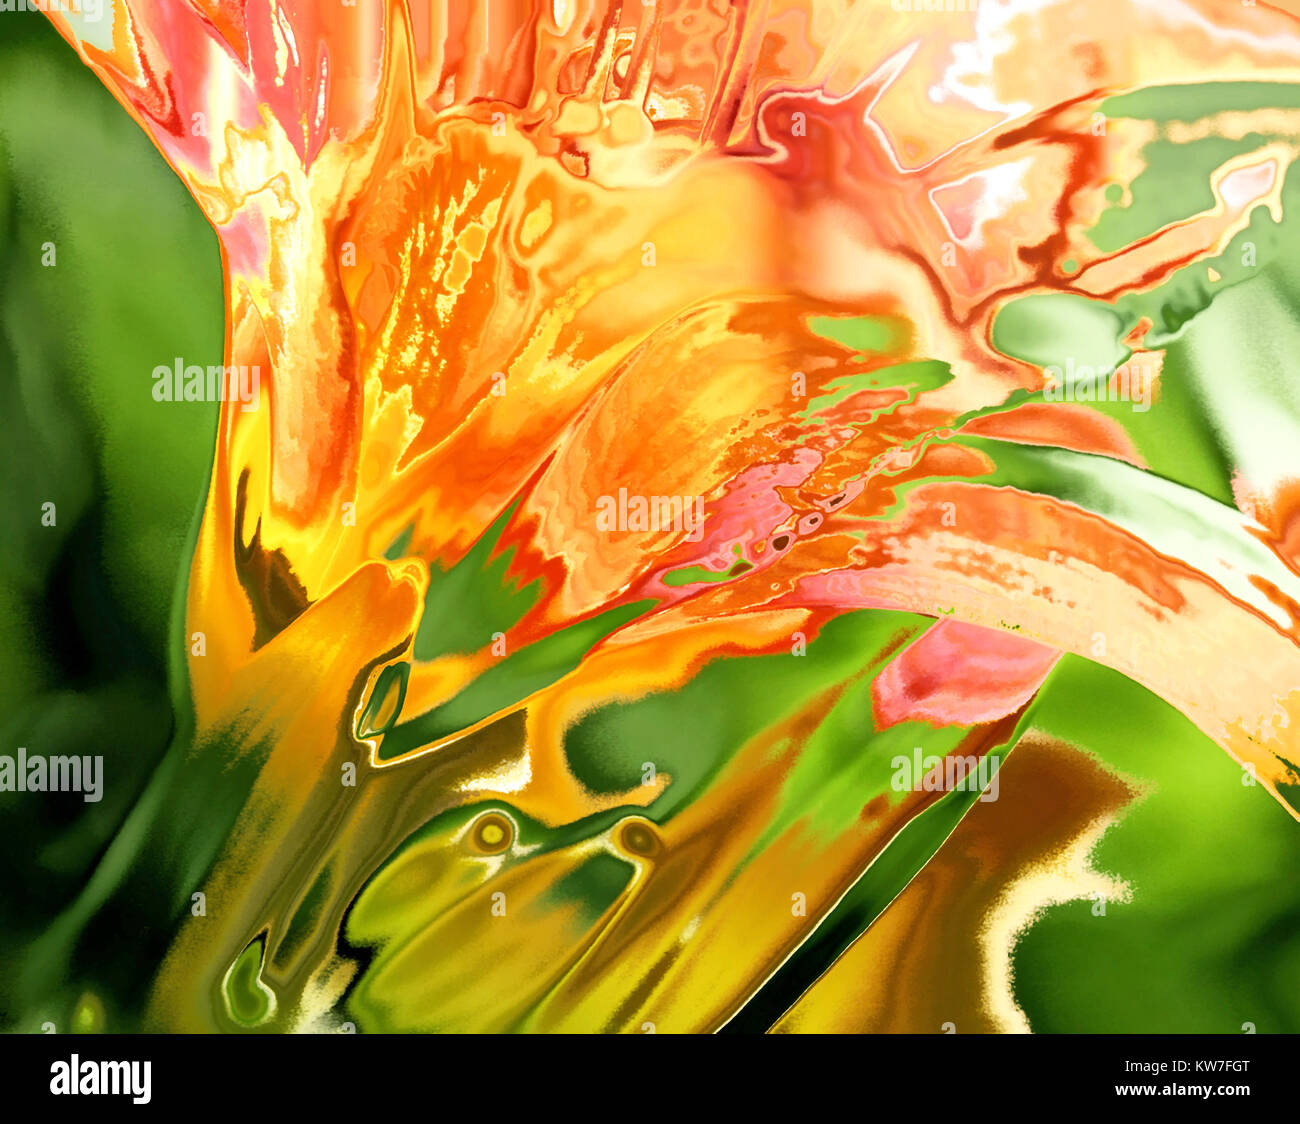 Abstract background - the Day Lily Flower Stock Photo